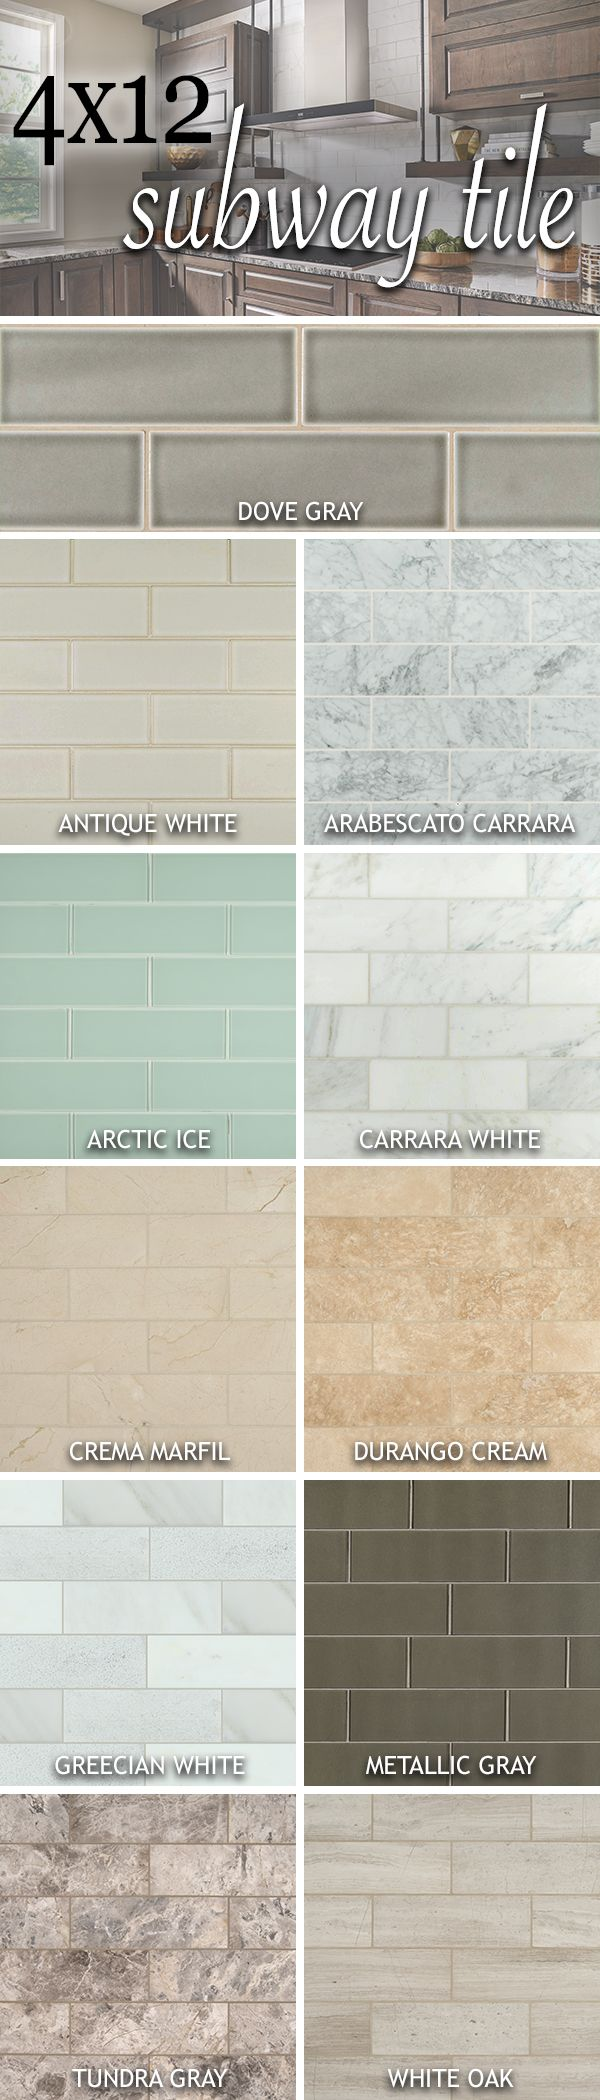 17 Best ideas about Subway Tile Colors – Subway Tile Colors Kitchen